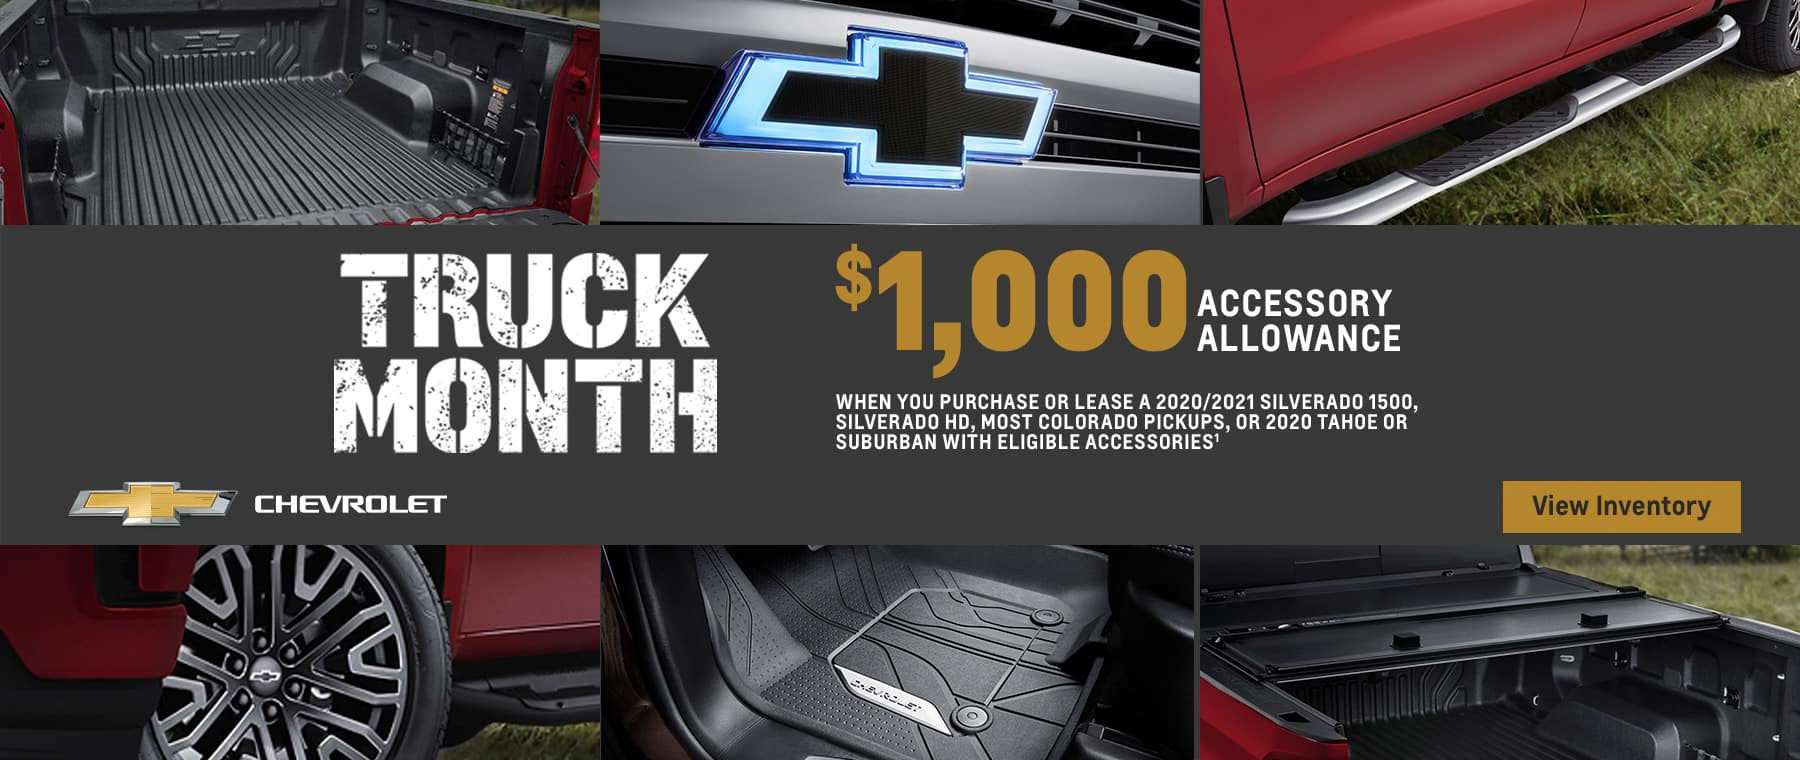 14_2020_OCTOBER_TRUCK MONTH ACCESSORIES_NATIONAL_1800x760 (1)